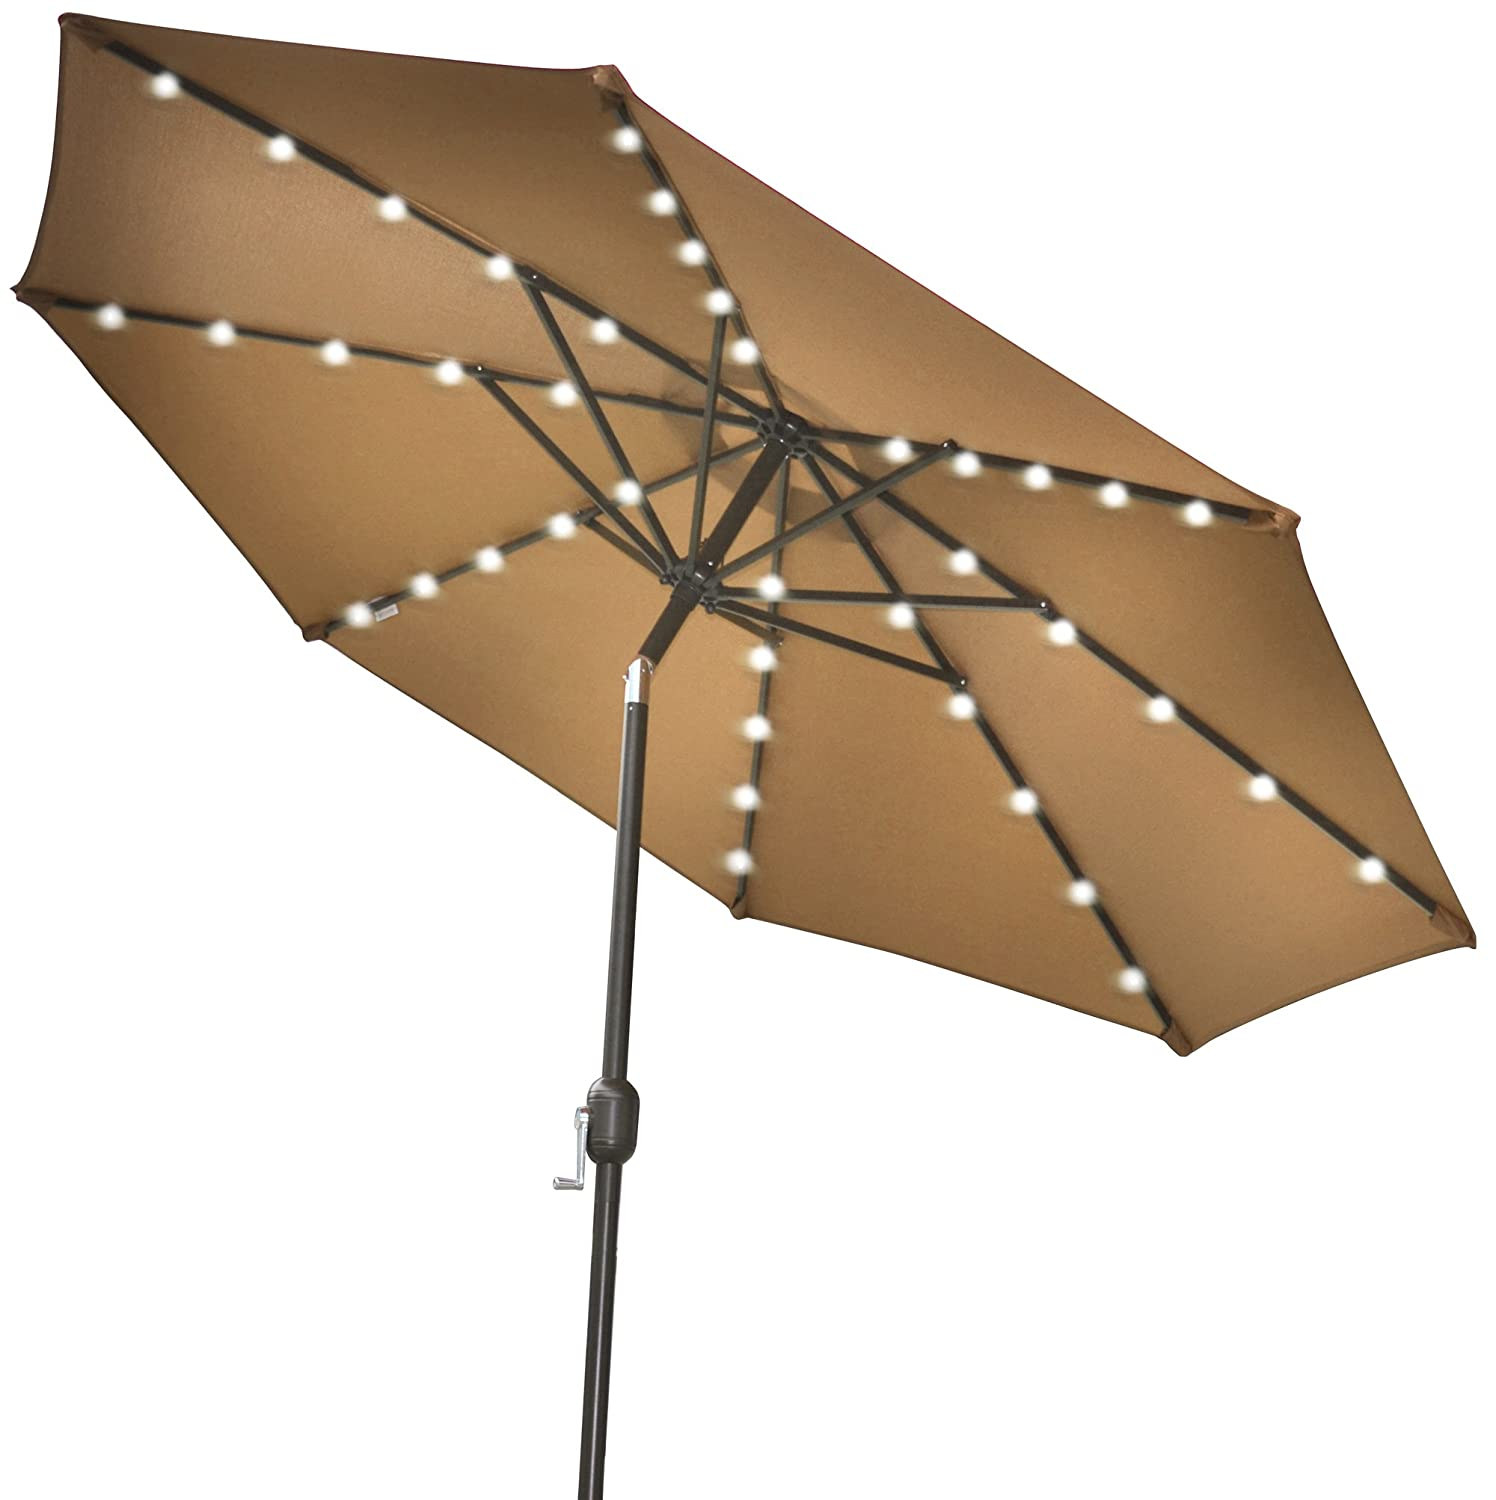 Nice Amazon.com : STRONG CAMEL 9u0027NEW SOLAR 40 LED LIGHTS PATIO UMBRELLA GARDEN  OUTDOOR SUNSHADE MARKET TAN : Patio Umbrella Solar Light Kit : Garden U0026  Outdoor